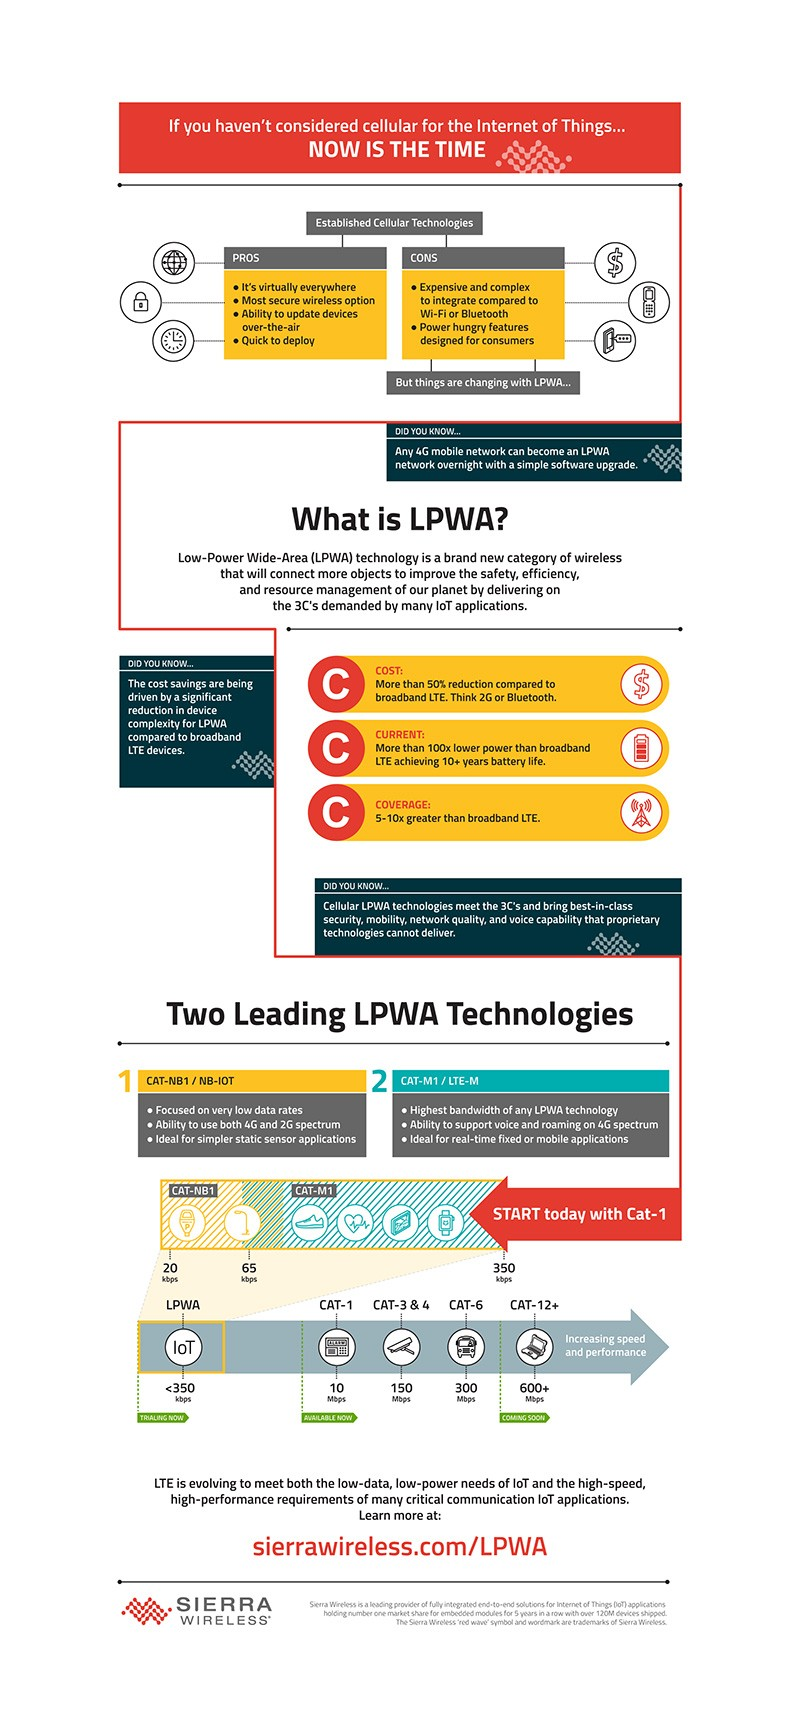 Sierra Wireless LPWA infographic